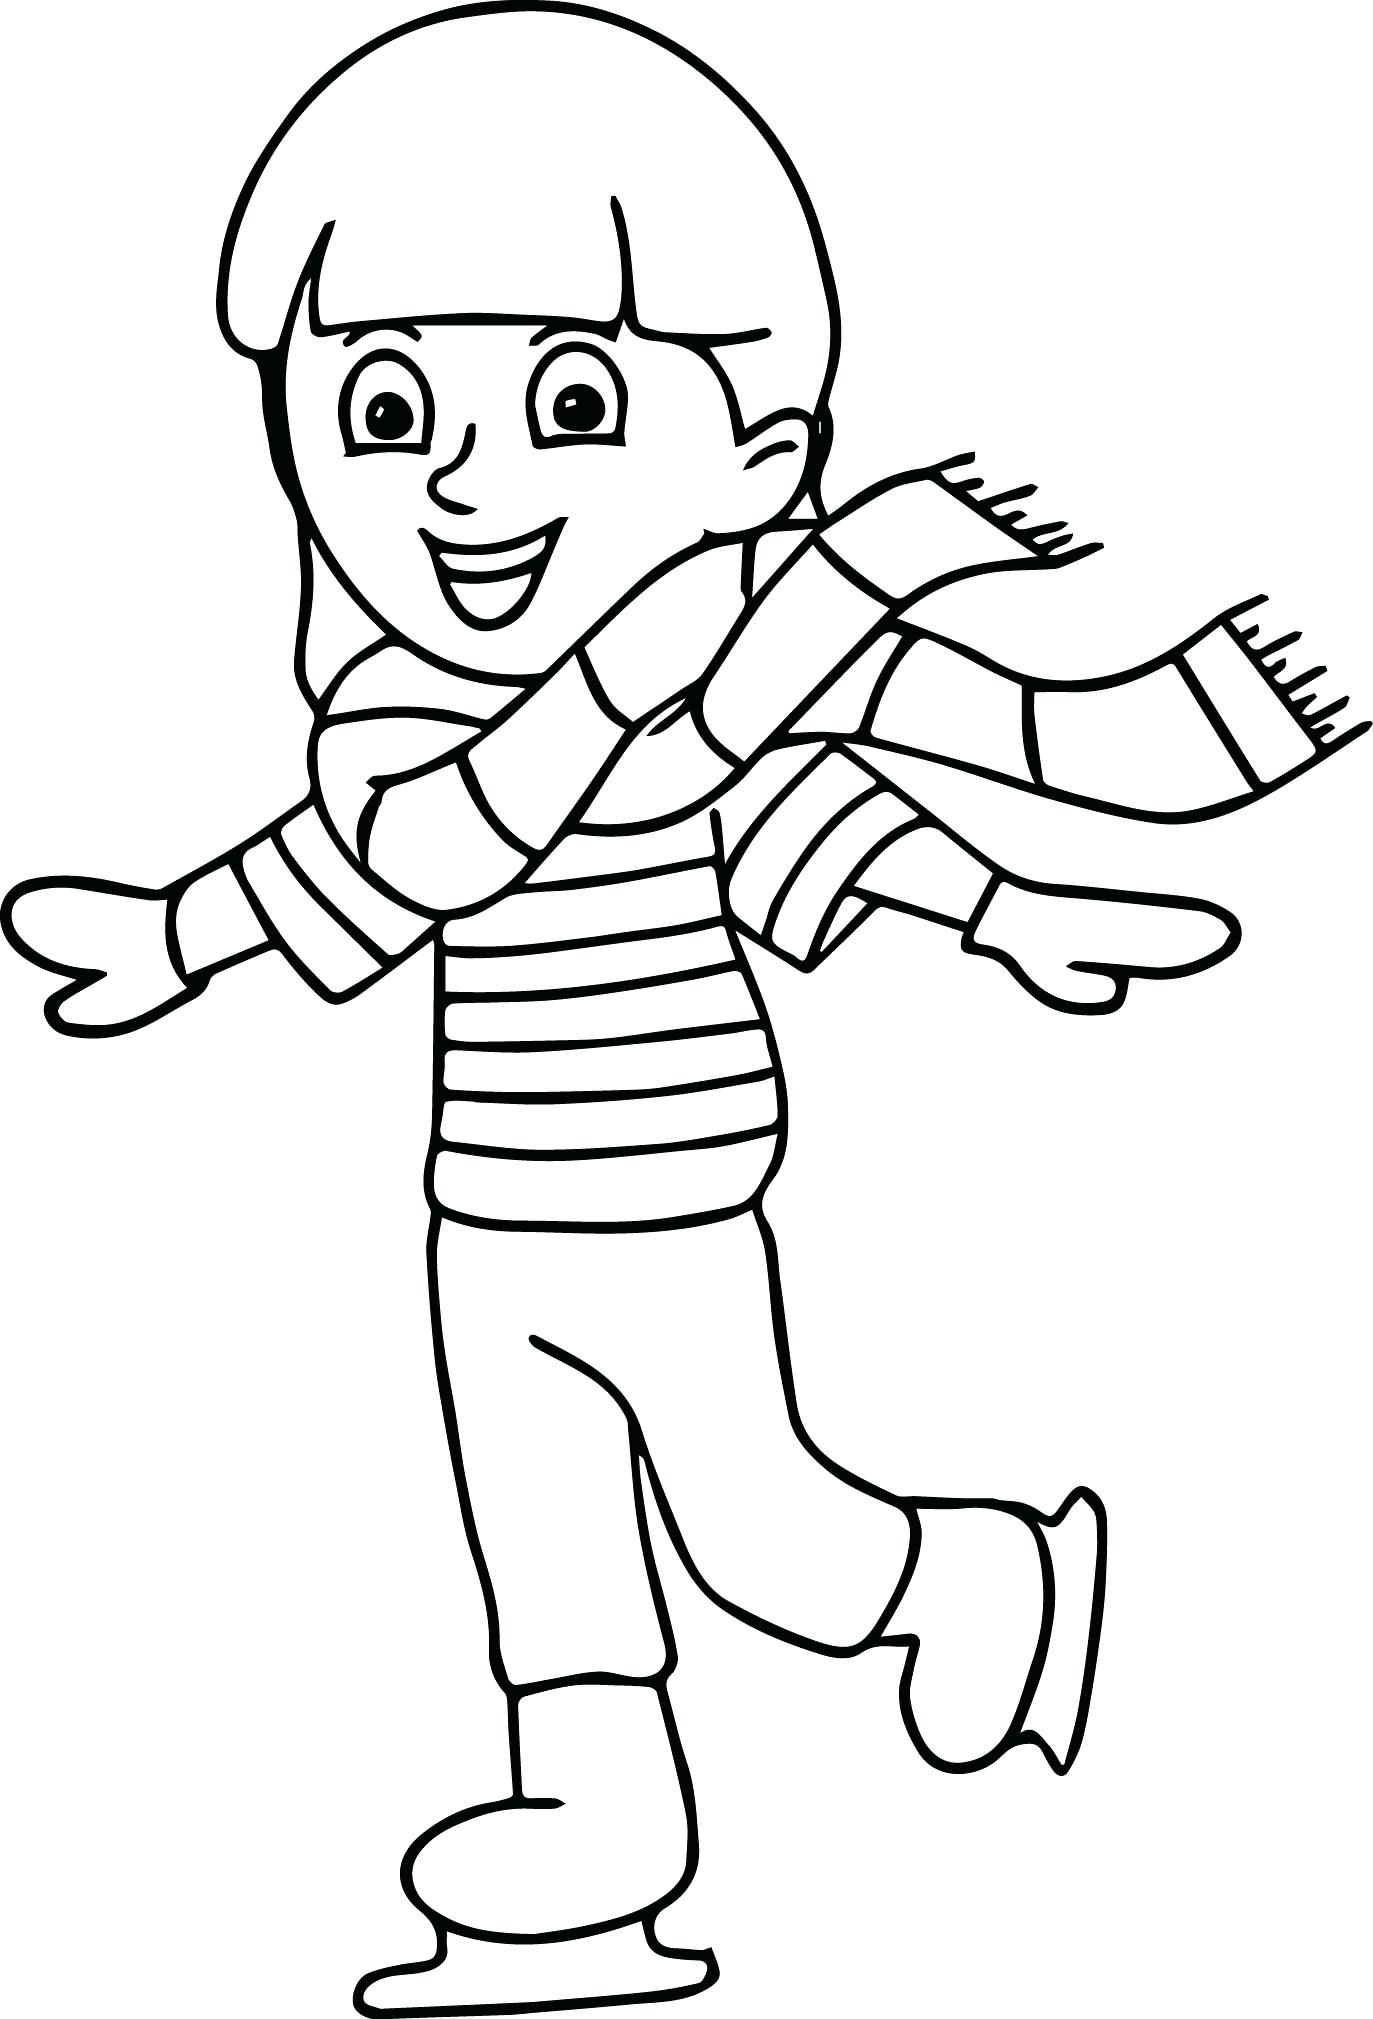 1373x2019 Coloring Figure Skating Coloring Pages Bratz Ice. Figure Skating